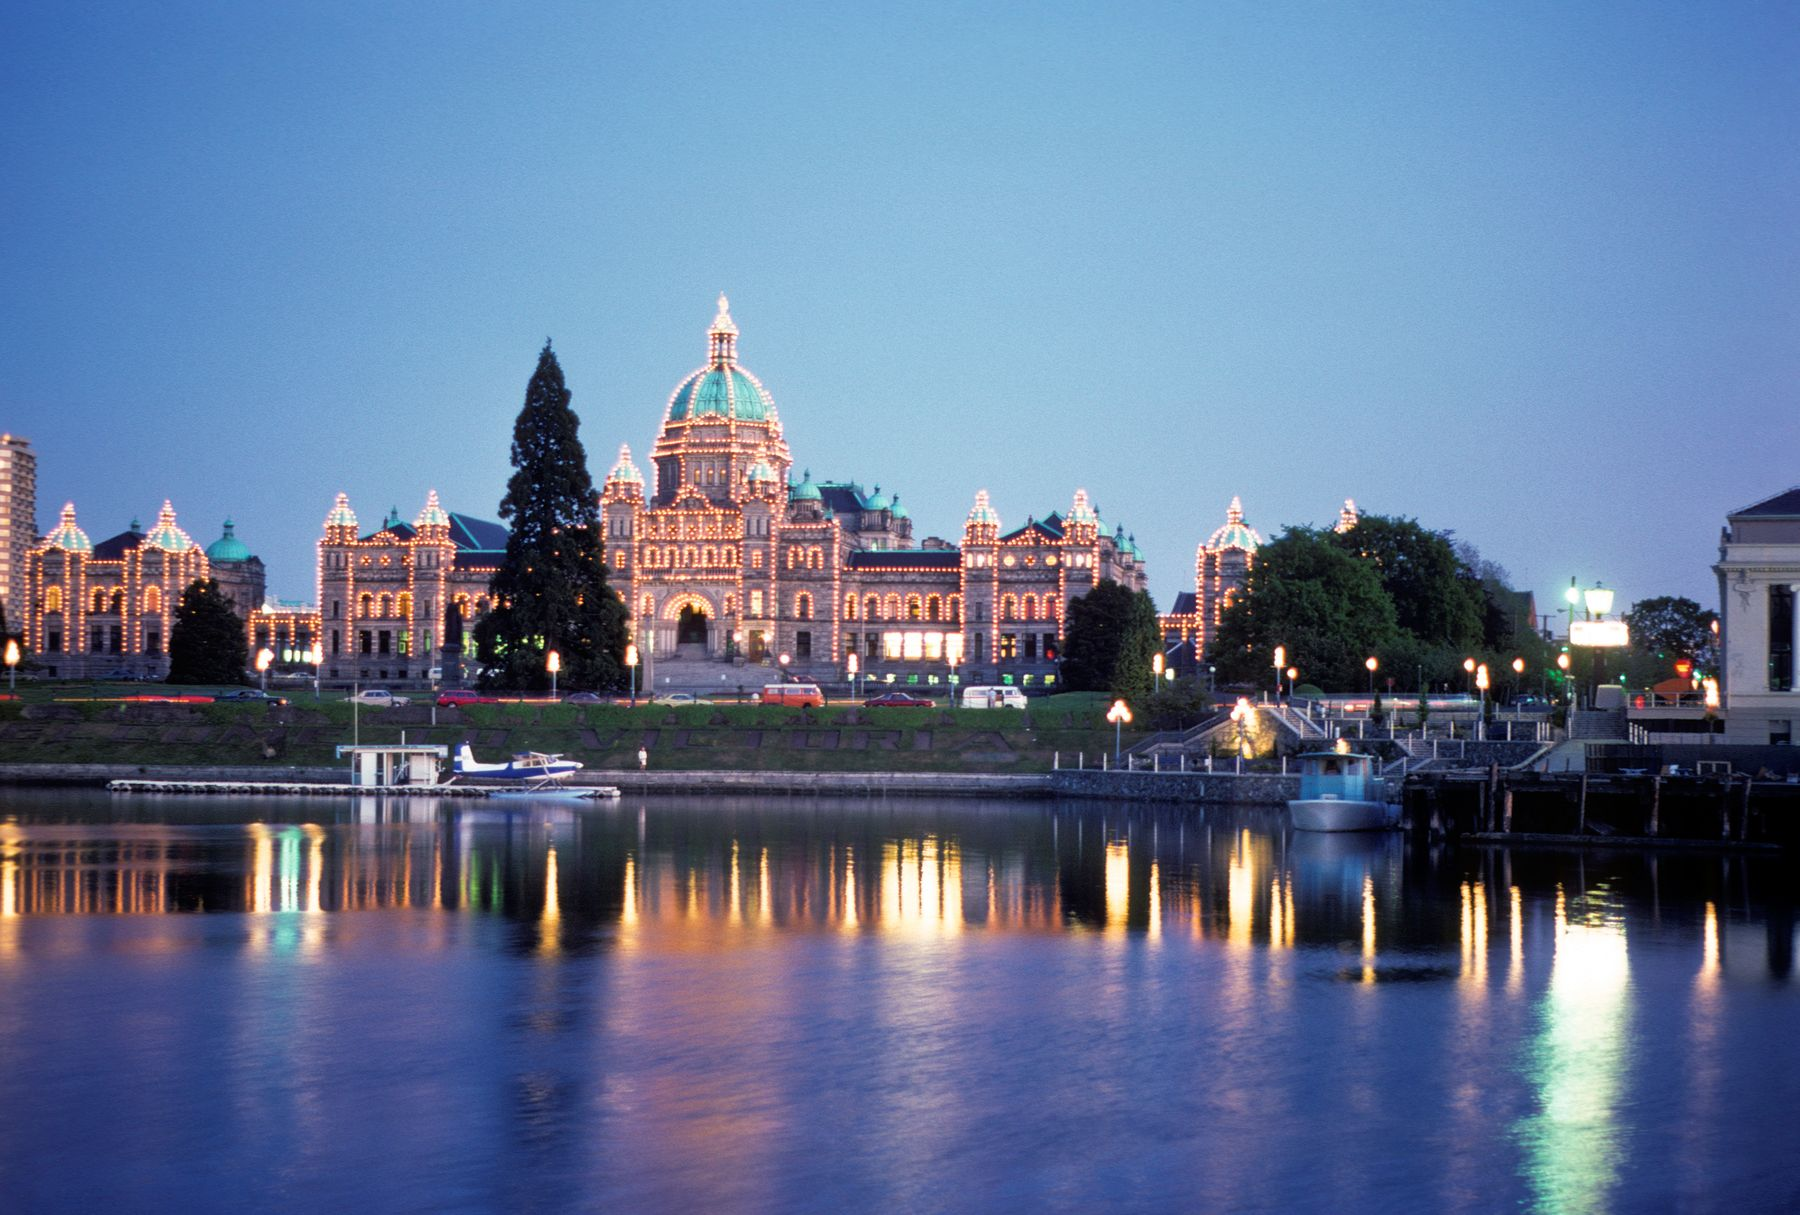 Victoria BC Parliament building with lights in the evening